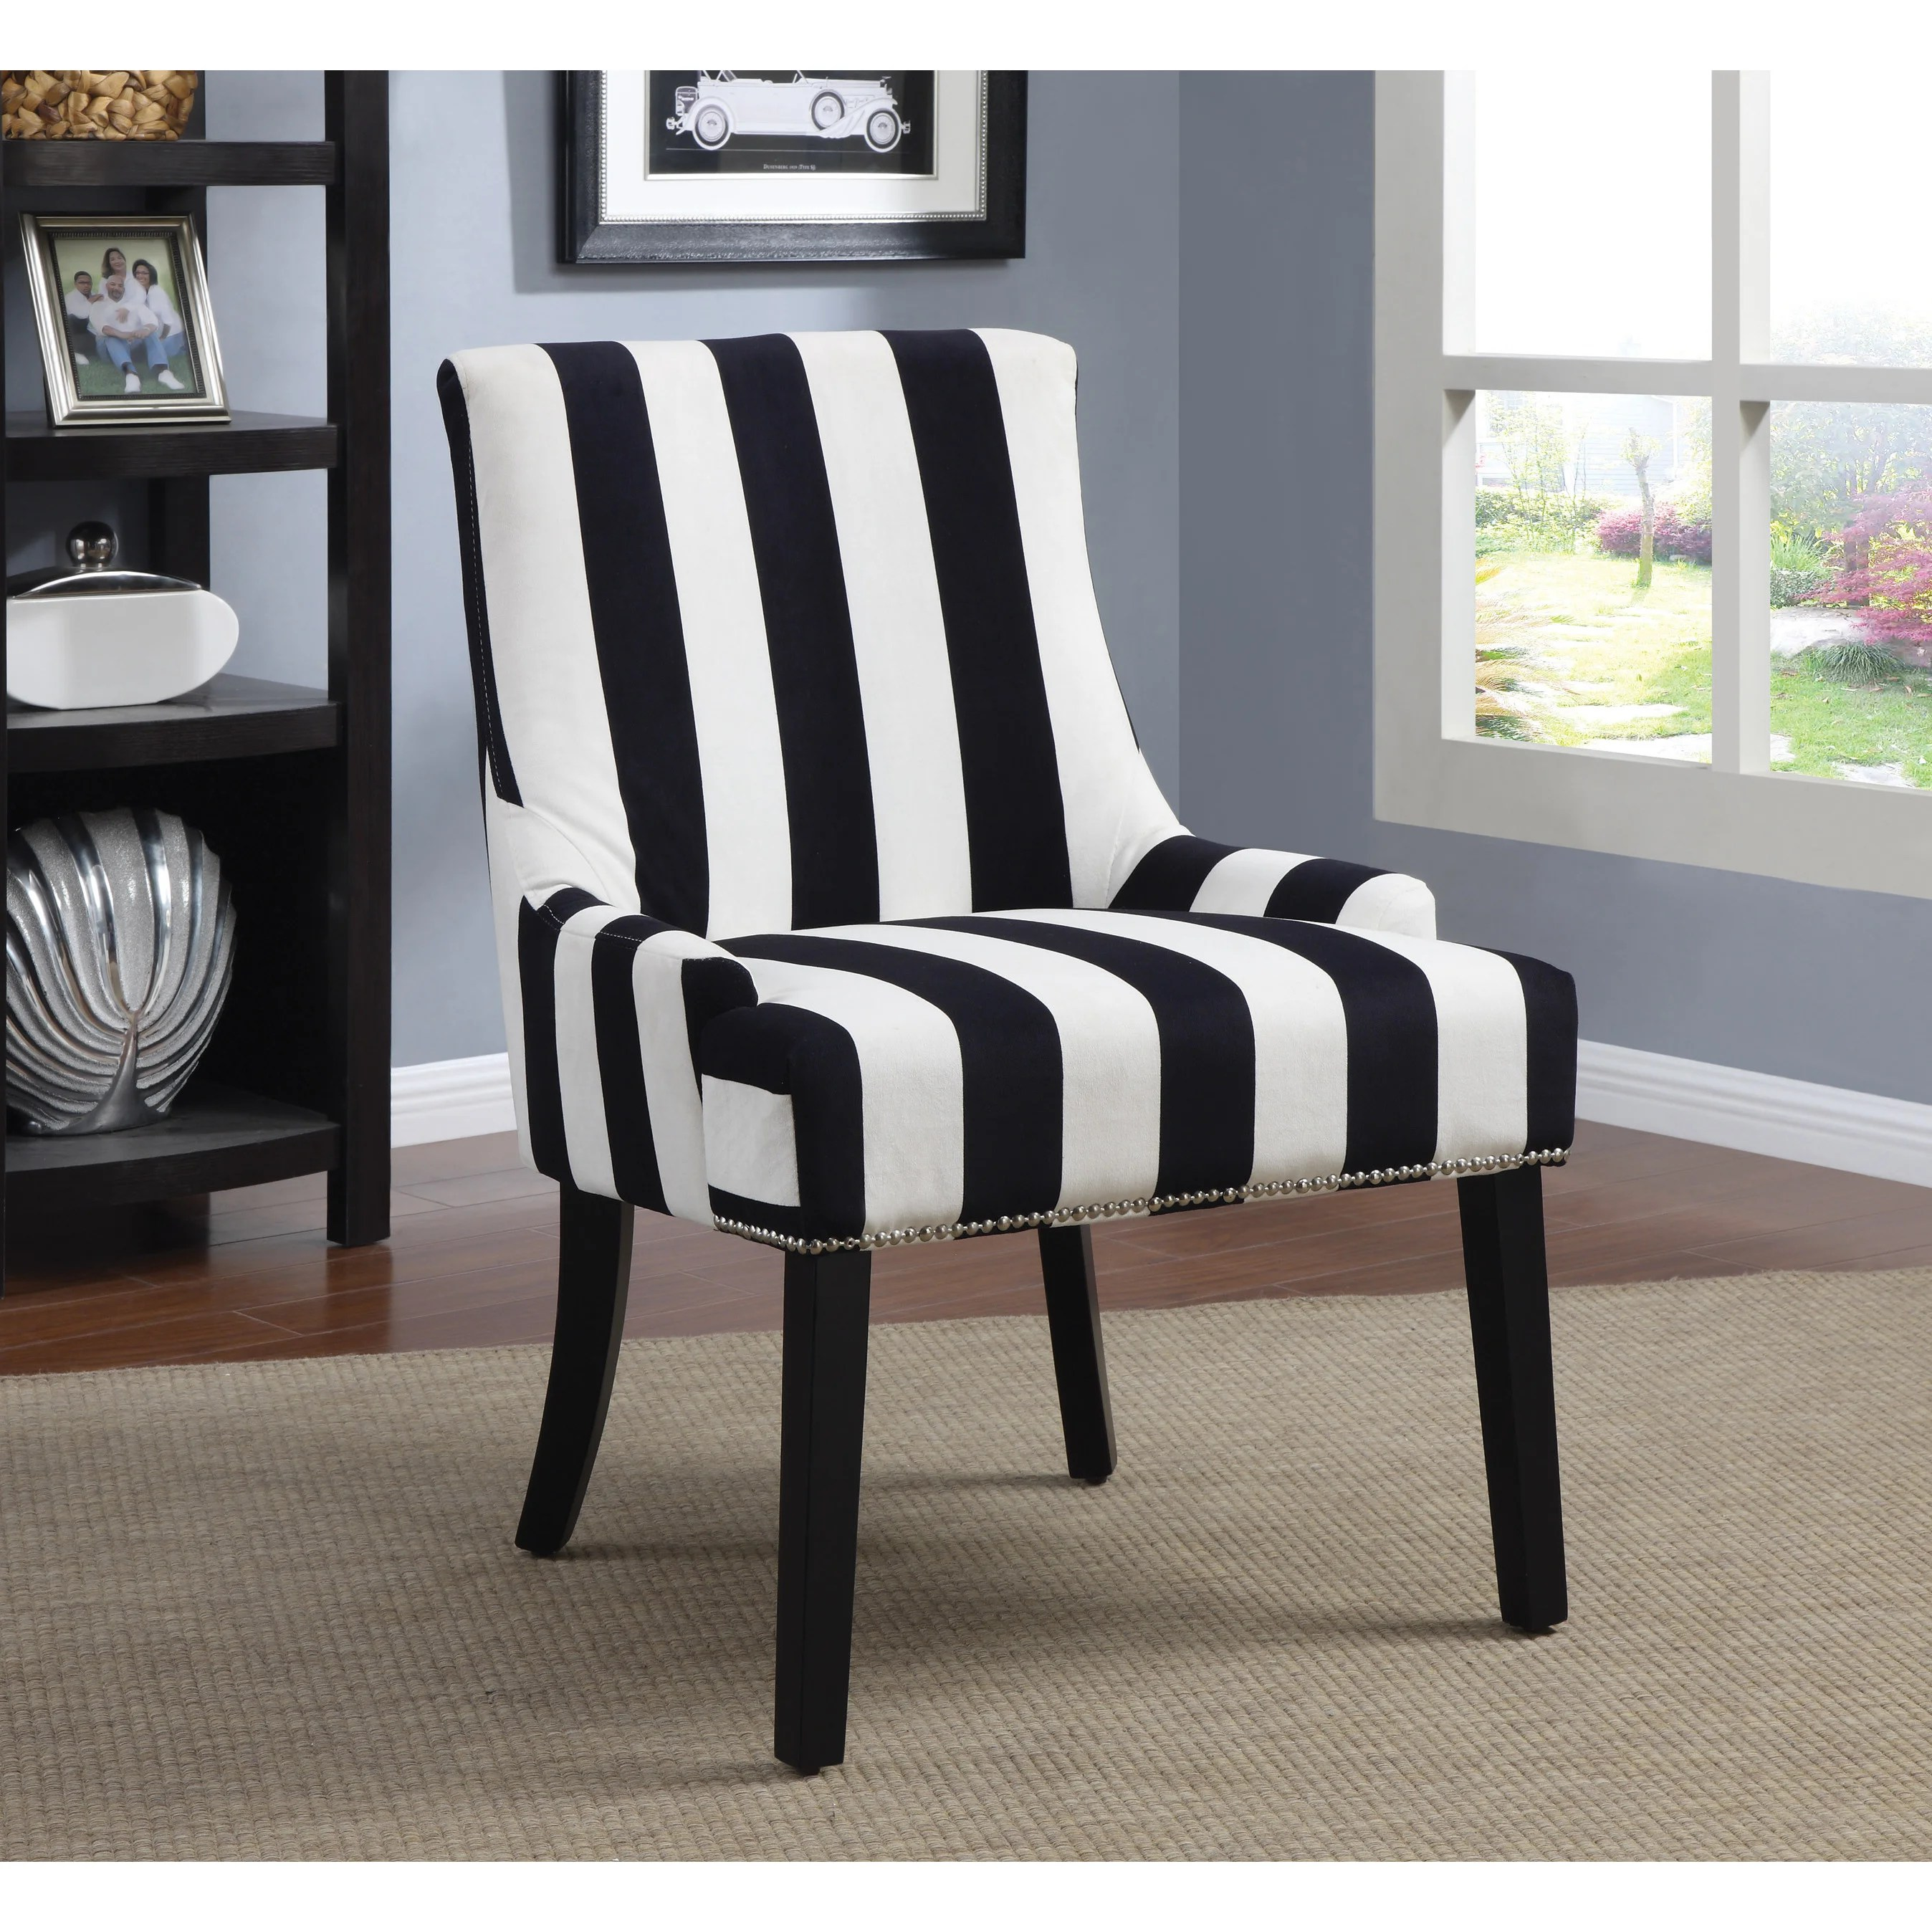 Blue And White Striped Chair Transitional Midnight Blue And White Accent Chair